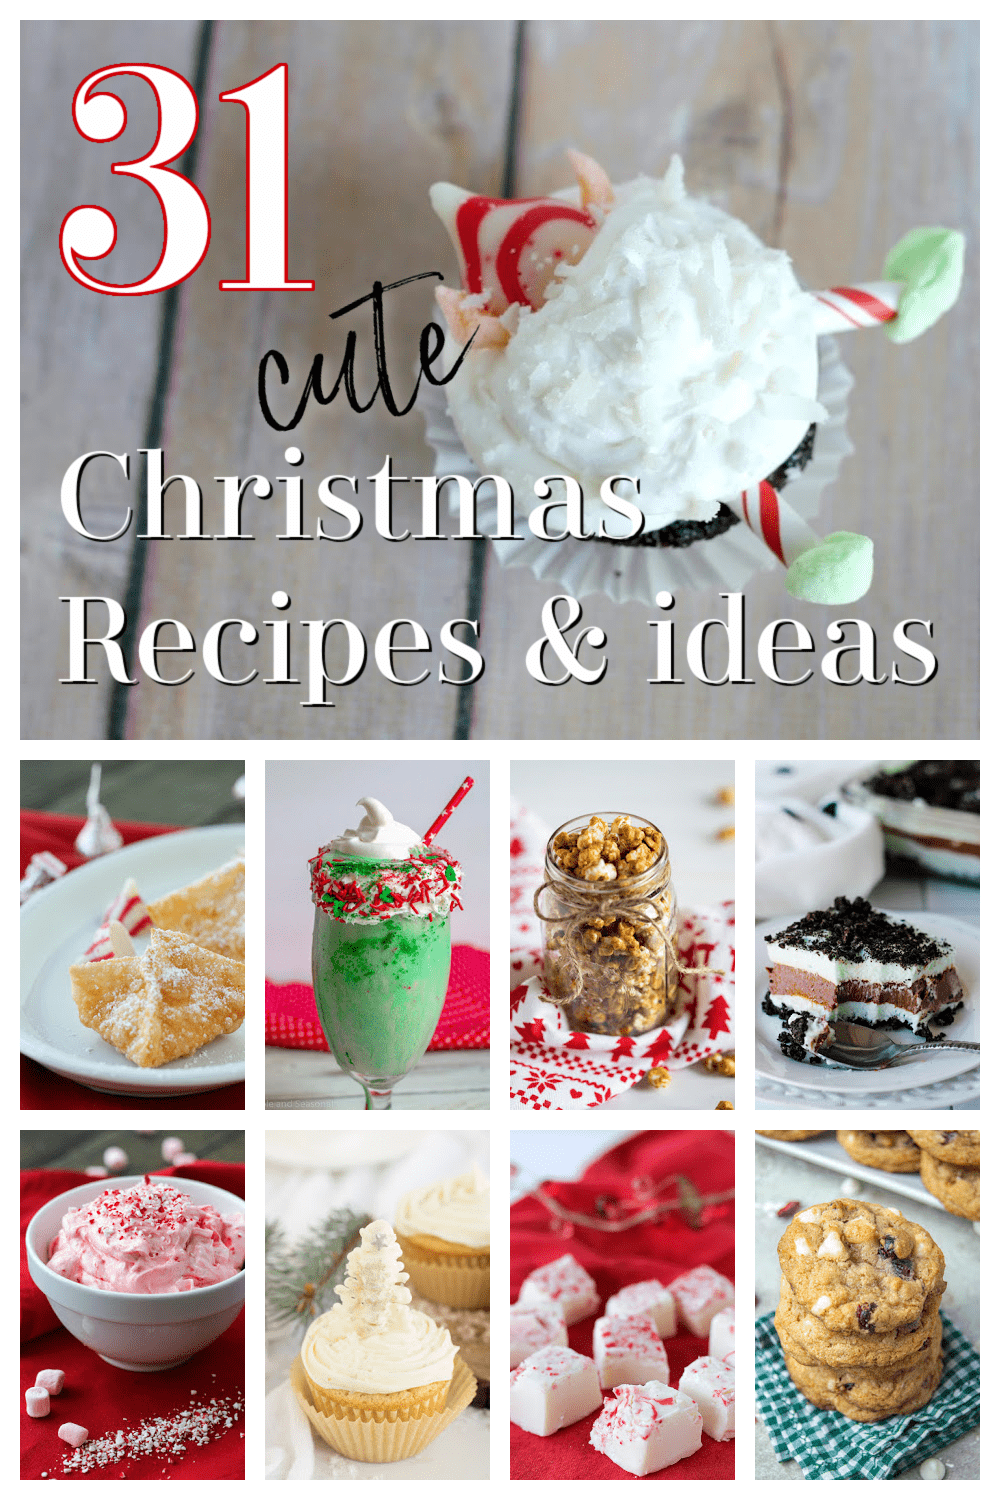 Over 30 Christmas recipes and ideas for making the most of the holiday season via @nmburk